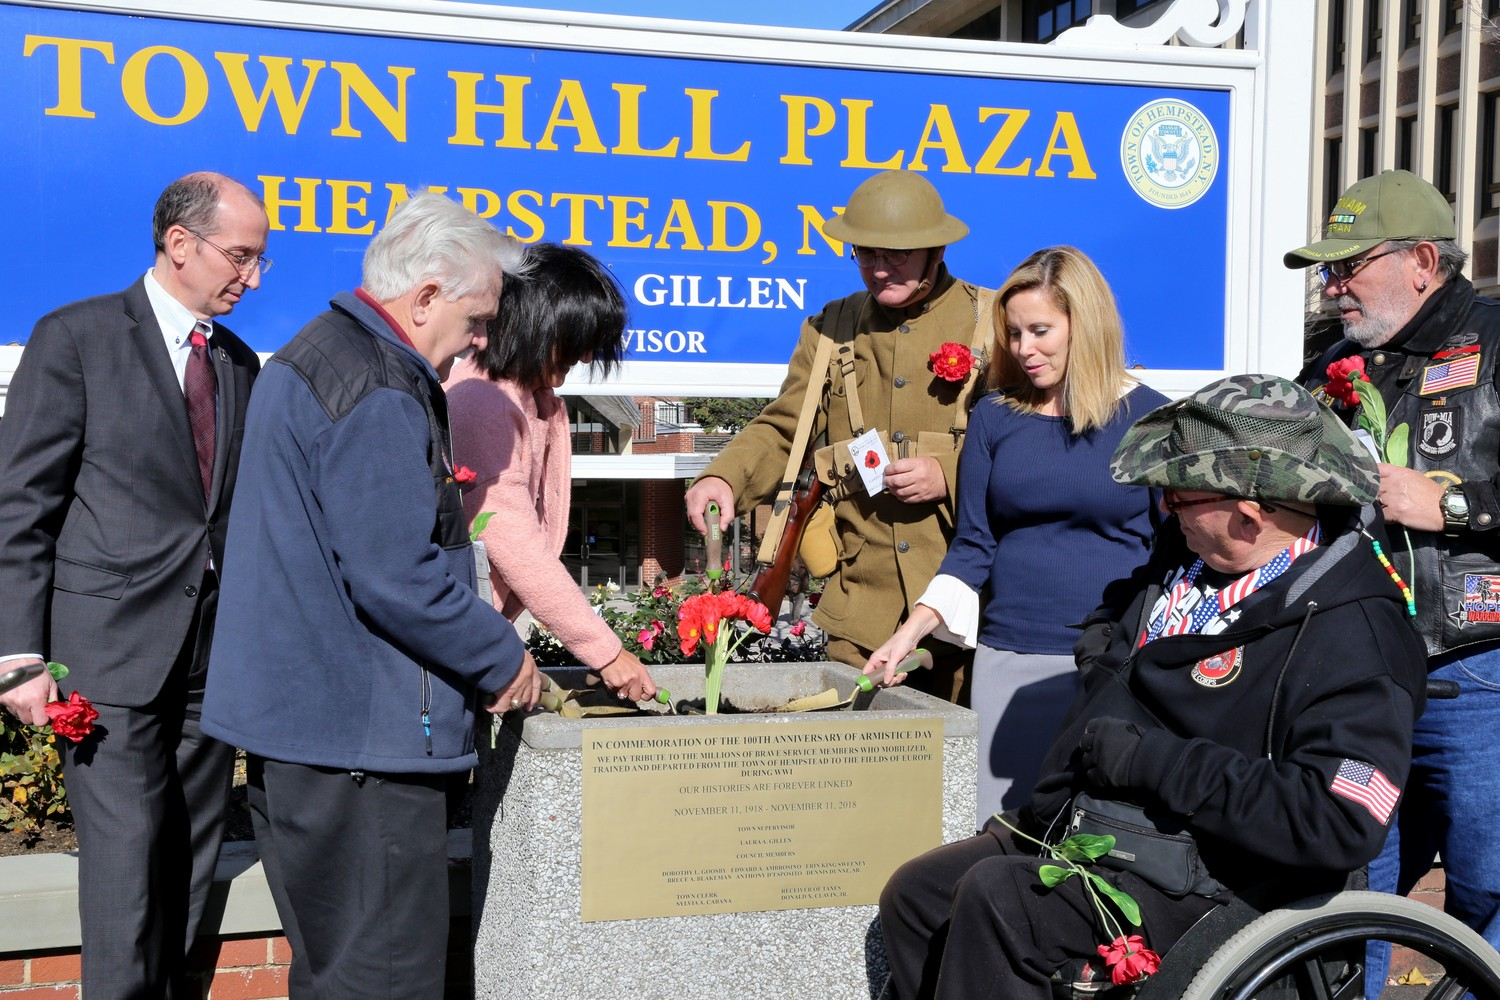 Gary Port, the United States army reserve ambassador to New York State, left, Ralph Esposito, the director of the Nassau County Veteran Service Agency, Sylvia Cabana, the Town of Hempstead clerk, Peter Bugala, a World War I reenactor, Laura Gillen, the supervisor of the Town of Hempstead, Andy Booth, the former commander of the Nassau County American Legion and Sal Martella, a member of the American Legion Post 1848 celebrated Armistice Day by planting red poppy seeds in a flowerbed at Hempstead Town Hall. The flower is a symbol of remembrance for those lost during World War I.